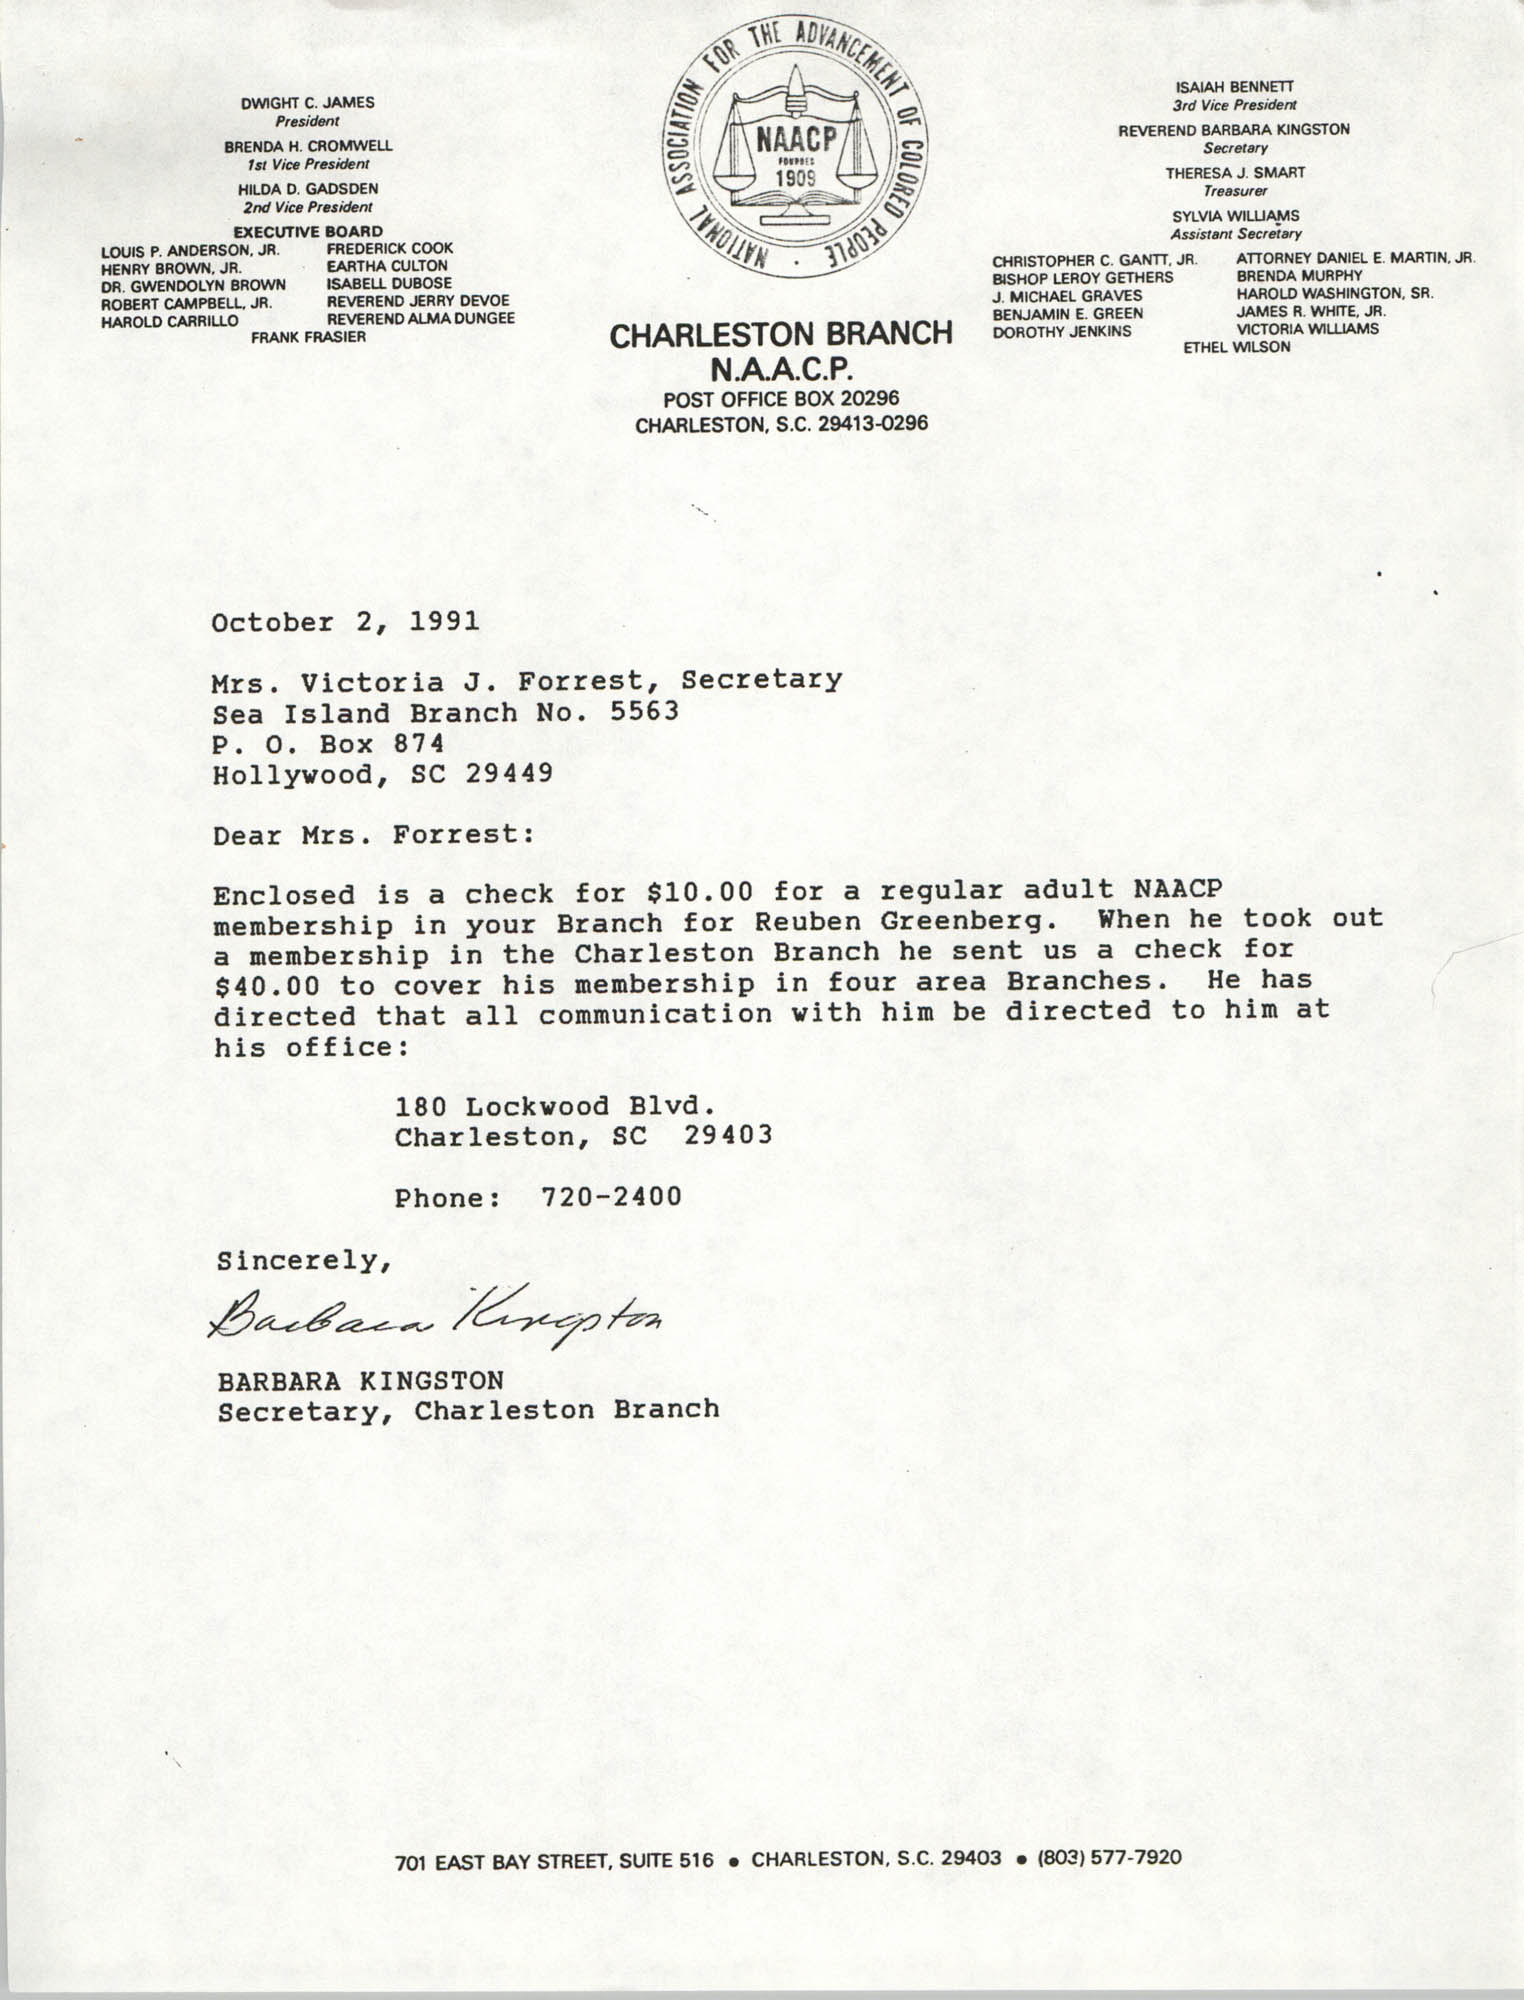 Letter from Barbara Kingston to Victoria J. Forrest, October 2, 1991